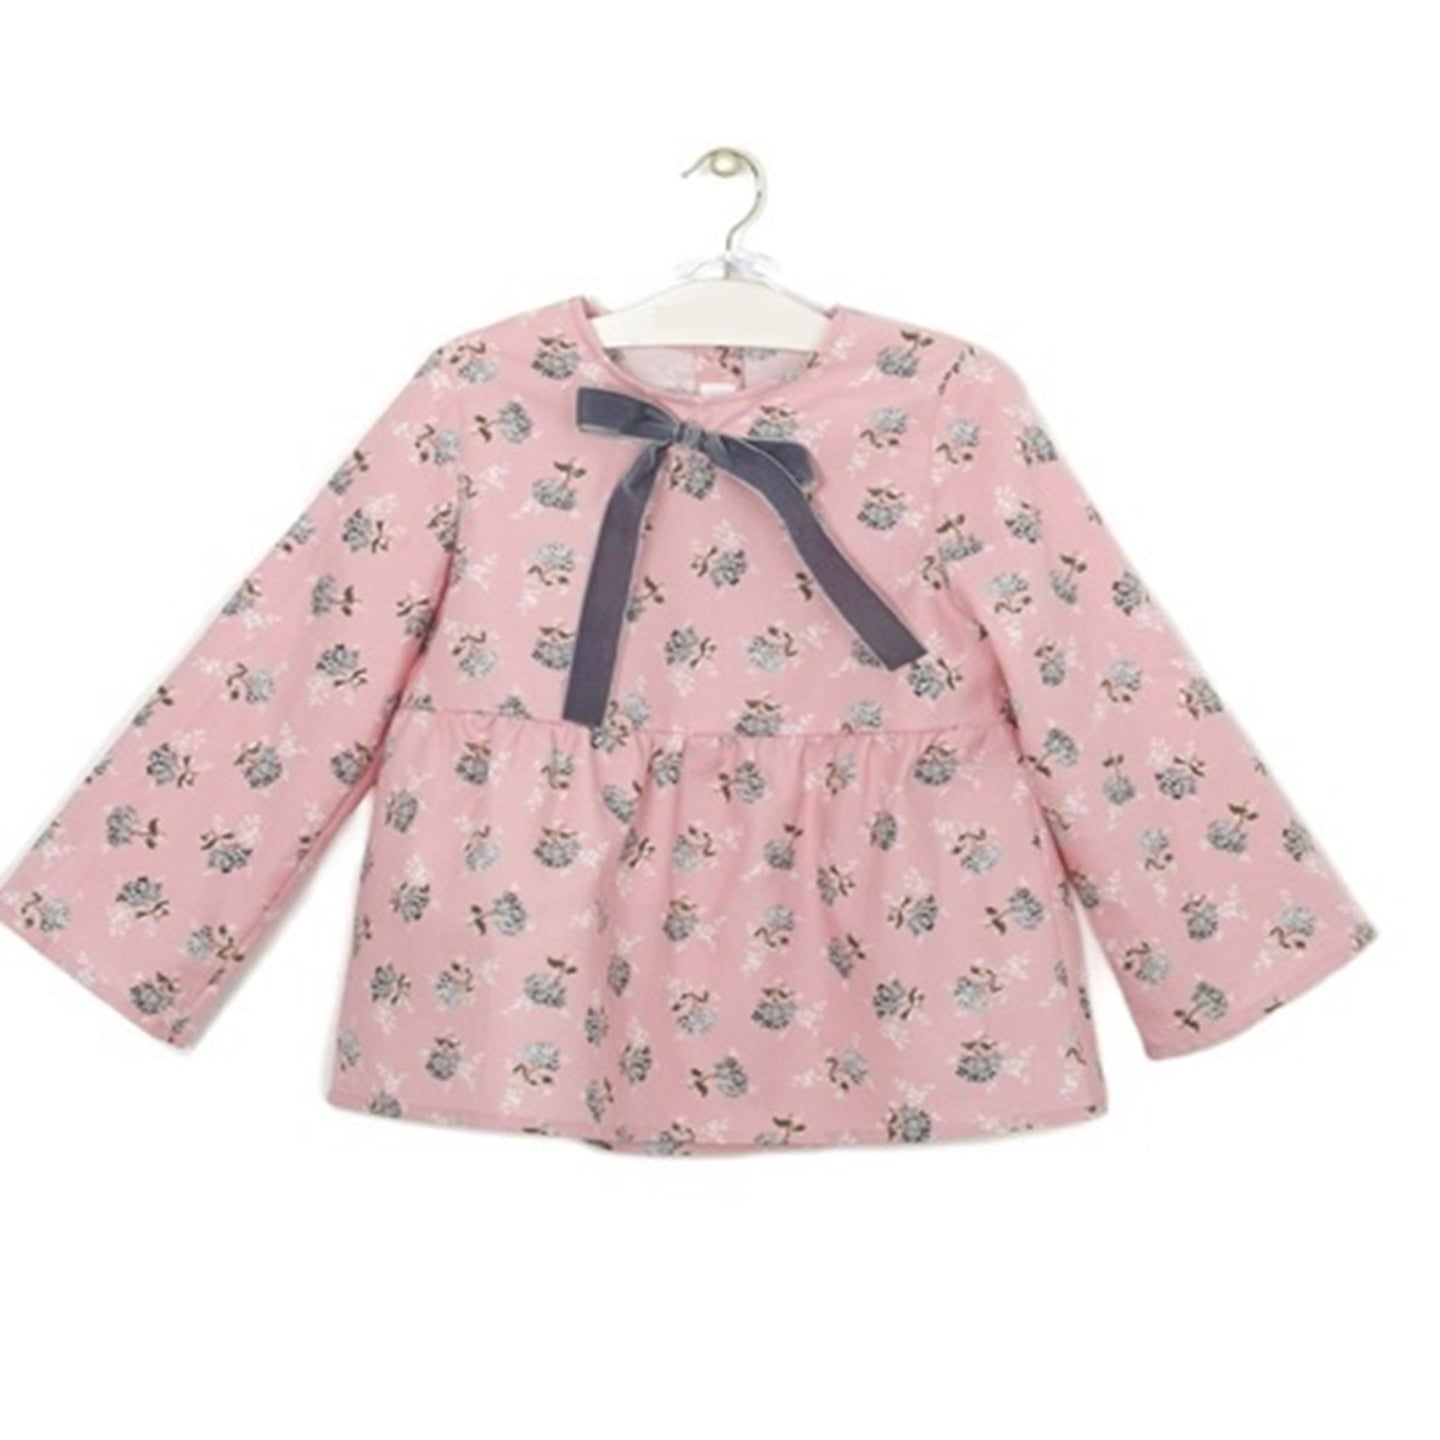 Pink Blouse with Flower Print and Grey Bow